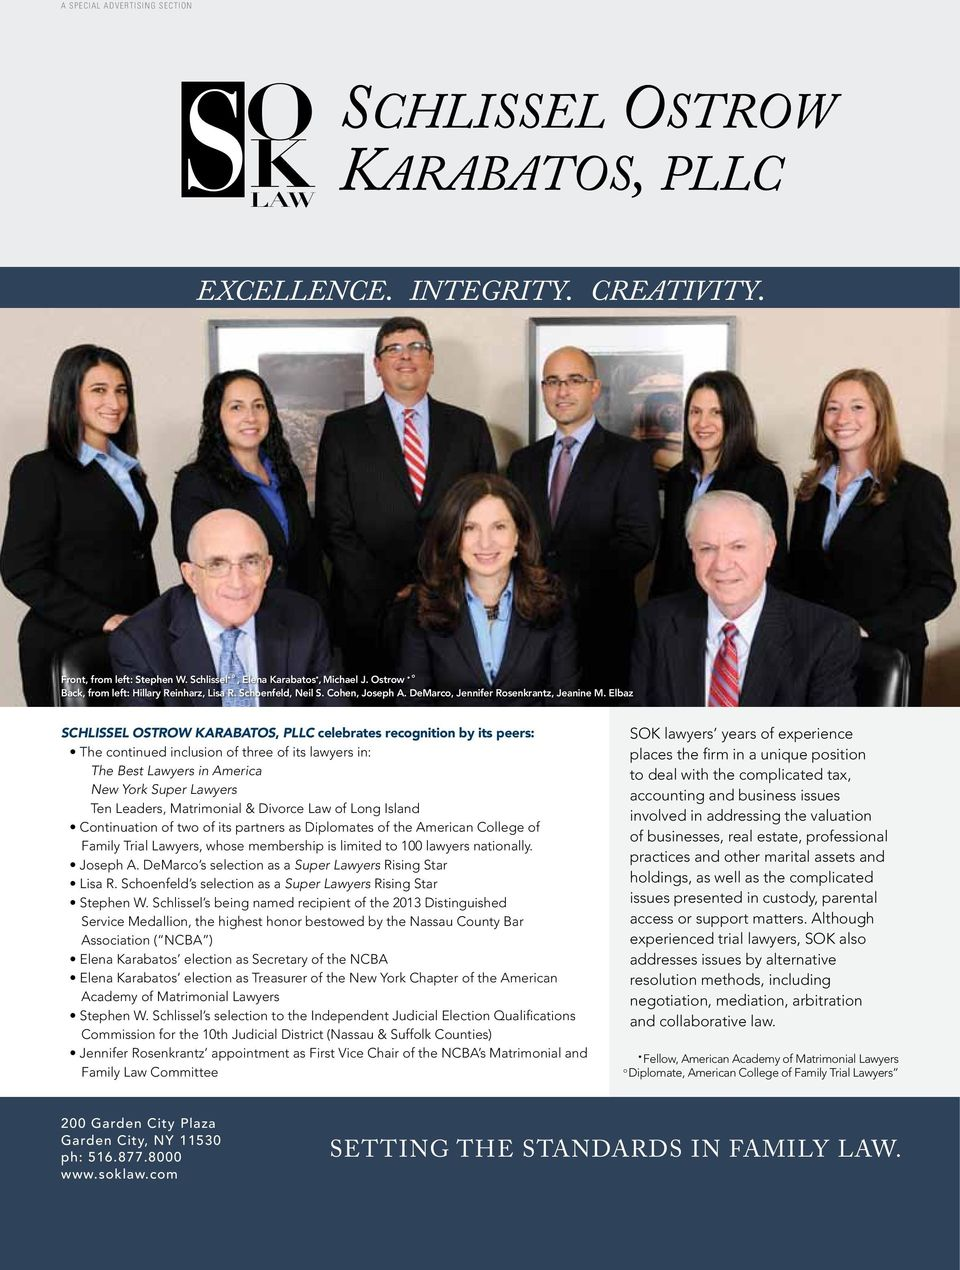 elbaz SCHliSSEl OStROW KaRaBatOS, PllC celebrates recognition by its peers: The continued inclusion of three of its lawyers in: the Best lawyers in america new york super lawyers Ten Leaders,